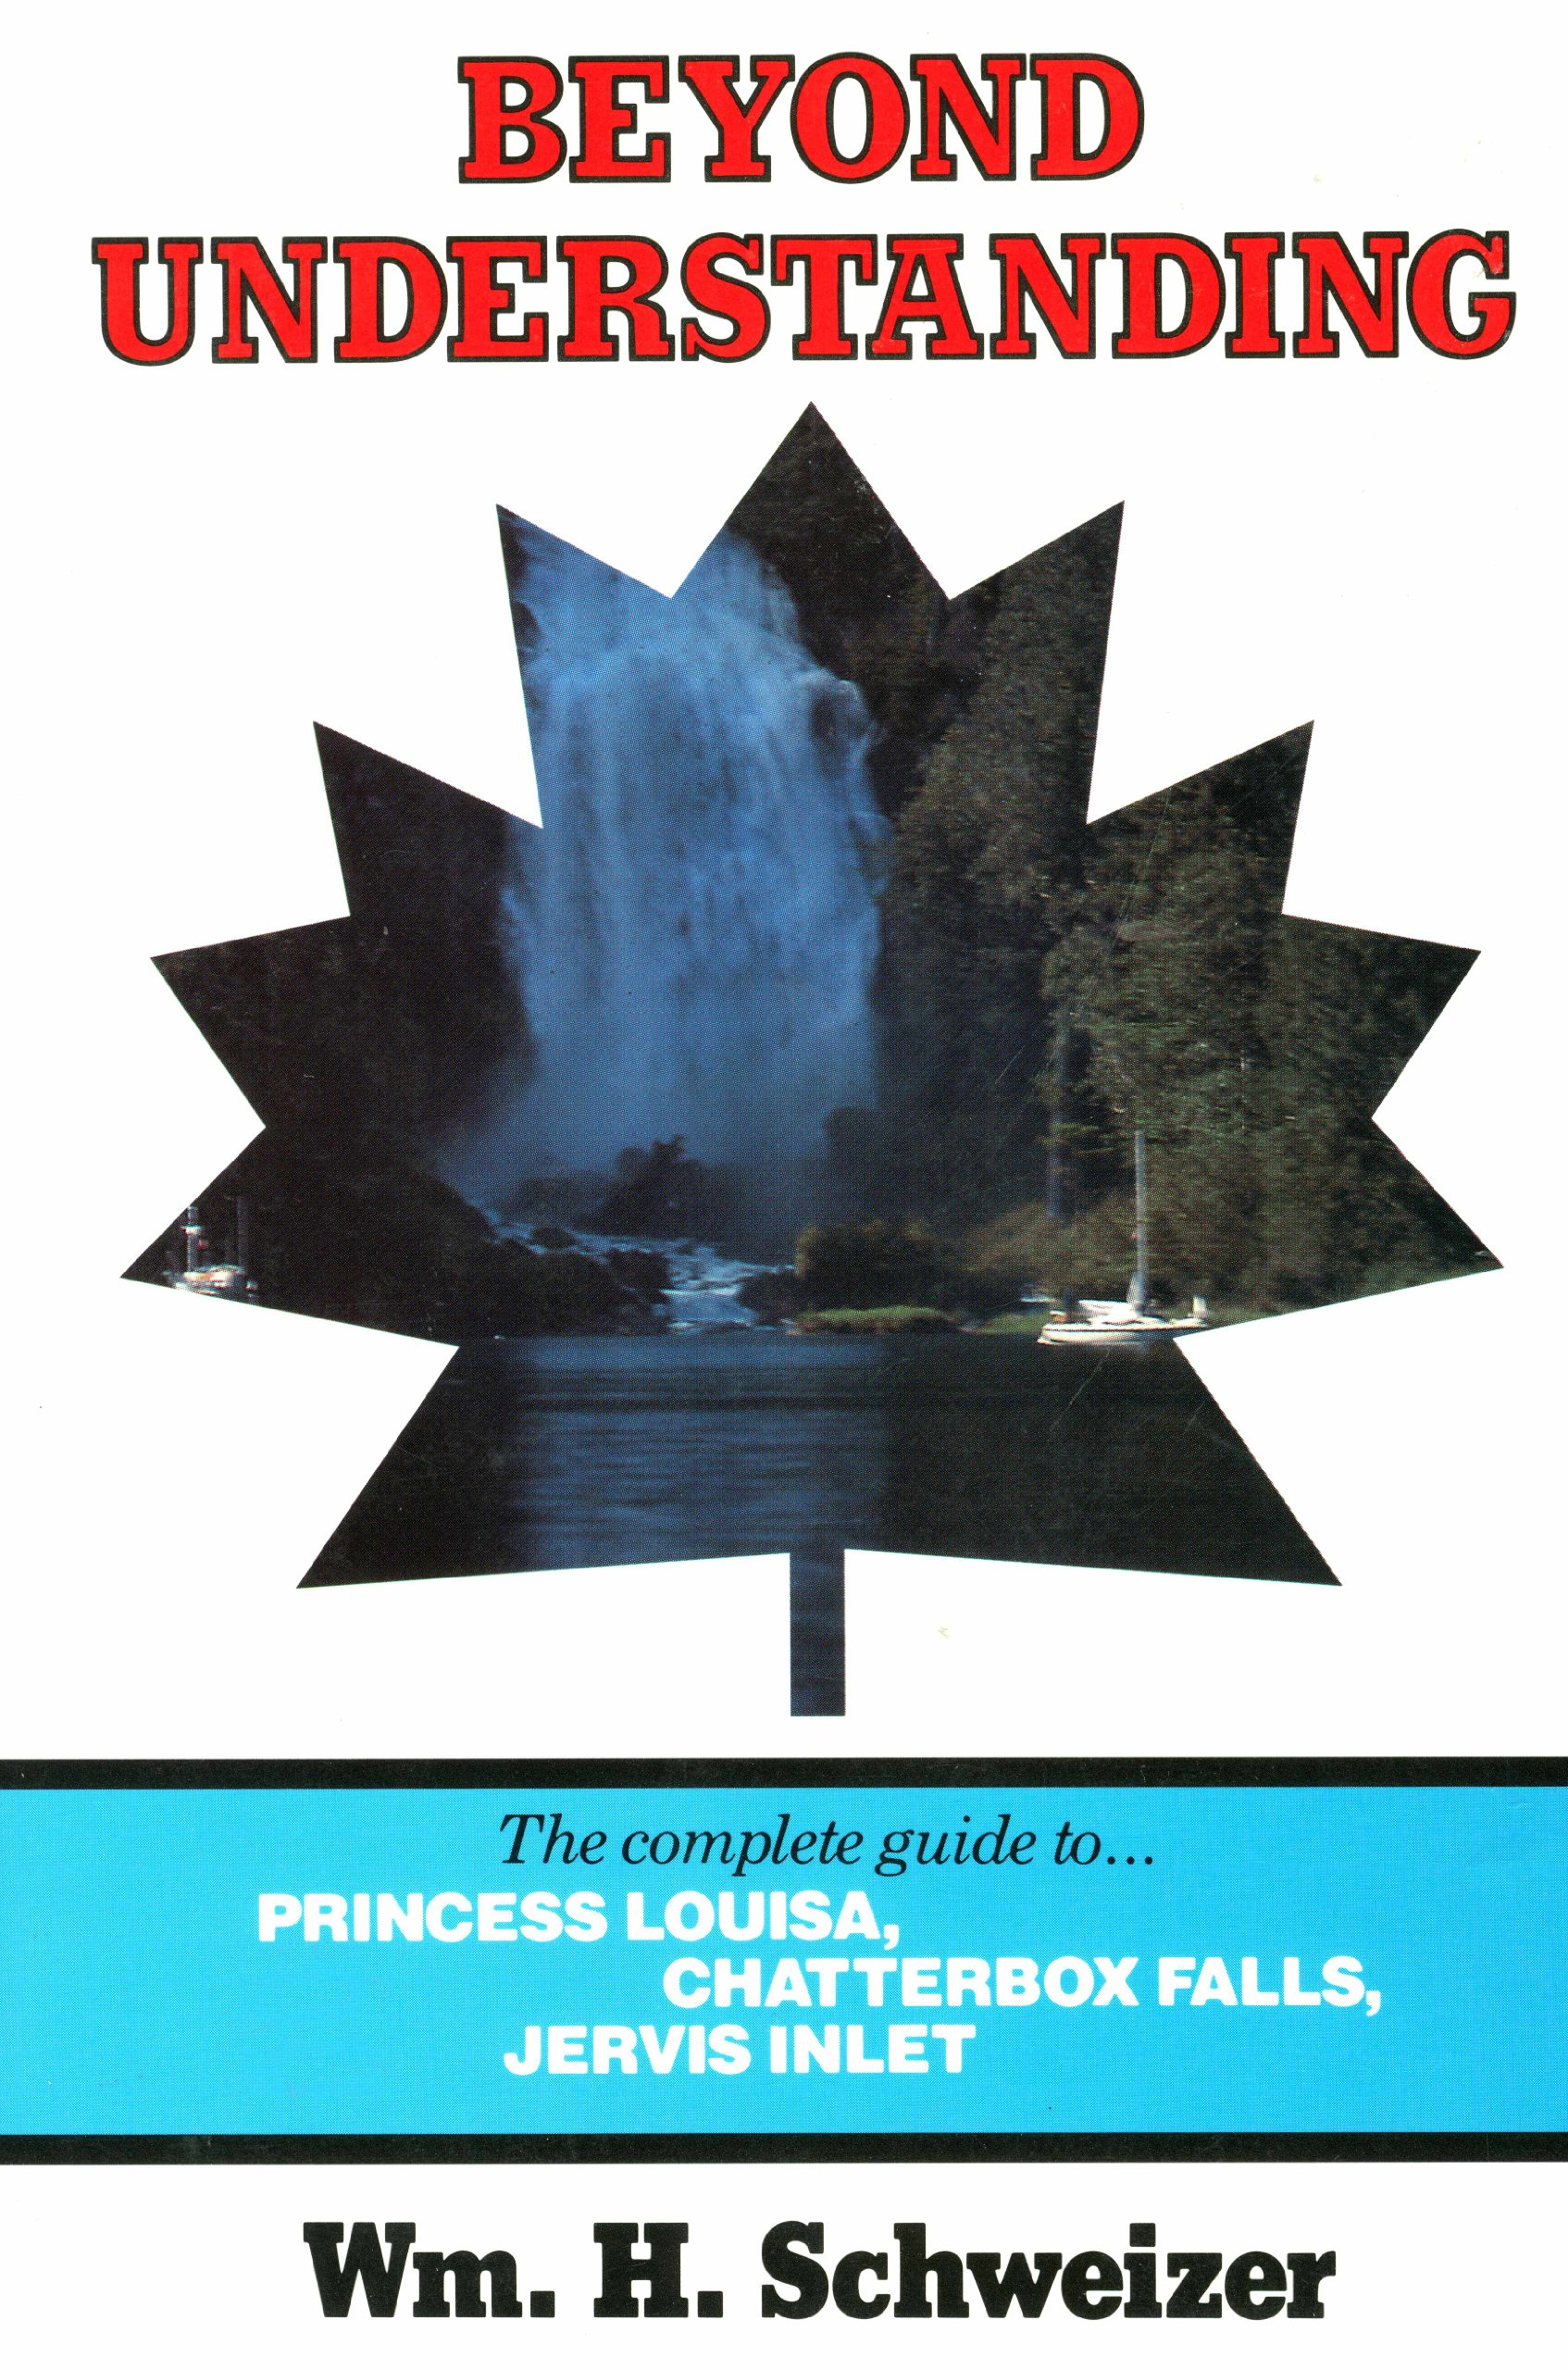 Beyond Understanding: The Complete Guide to Princess Louisa,      Chatterbox Falls, Jervis Inlet, Schweizer, Willam